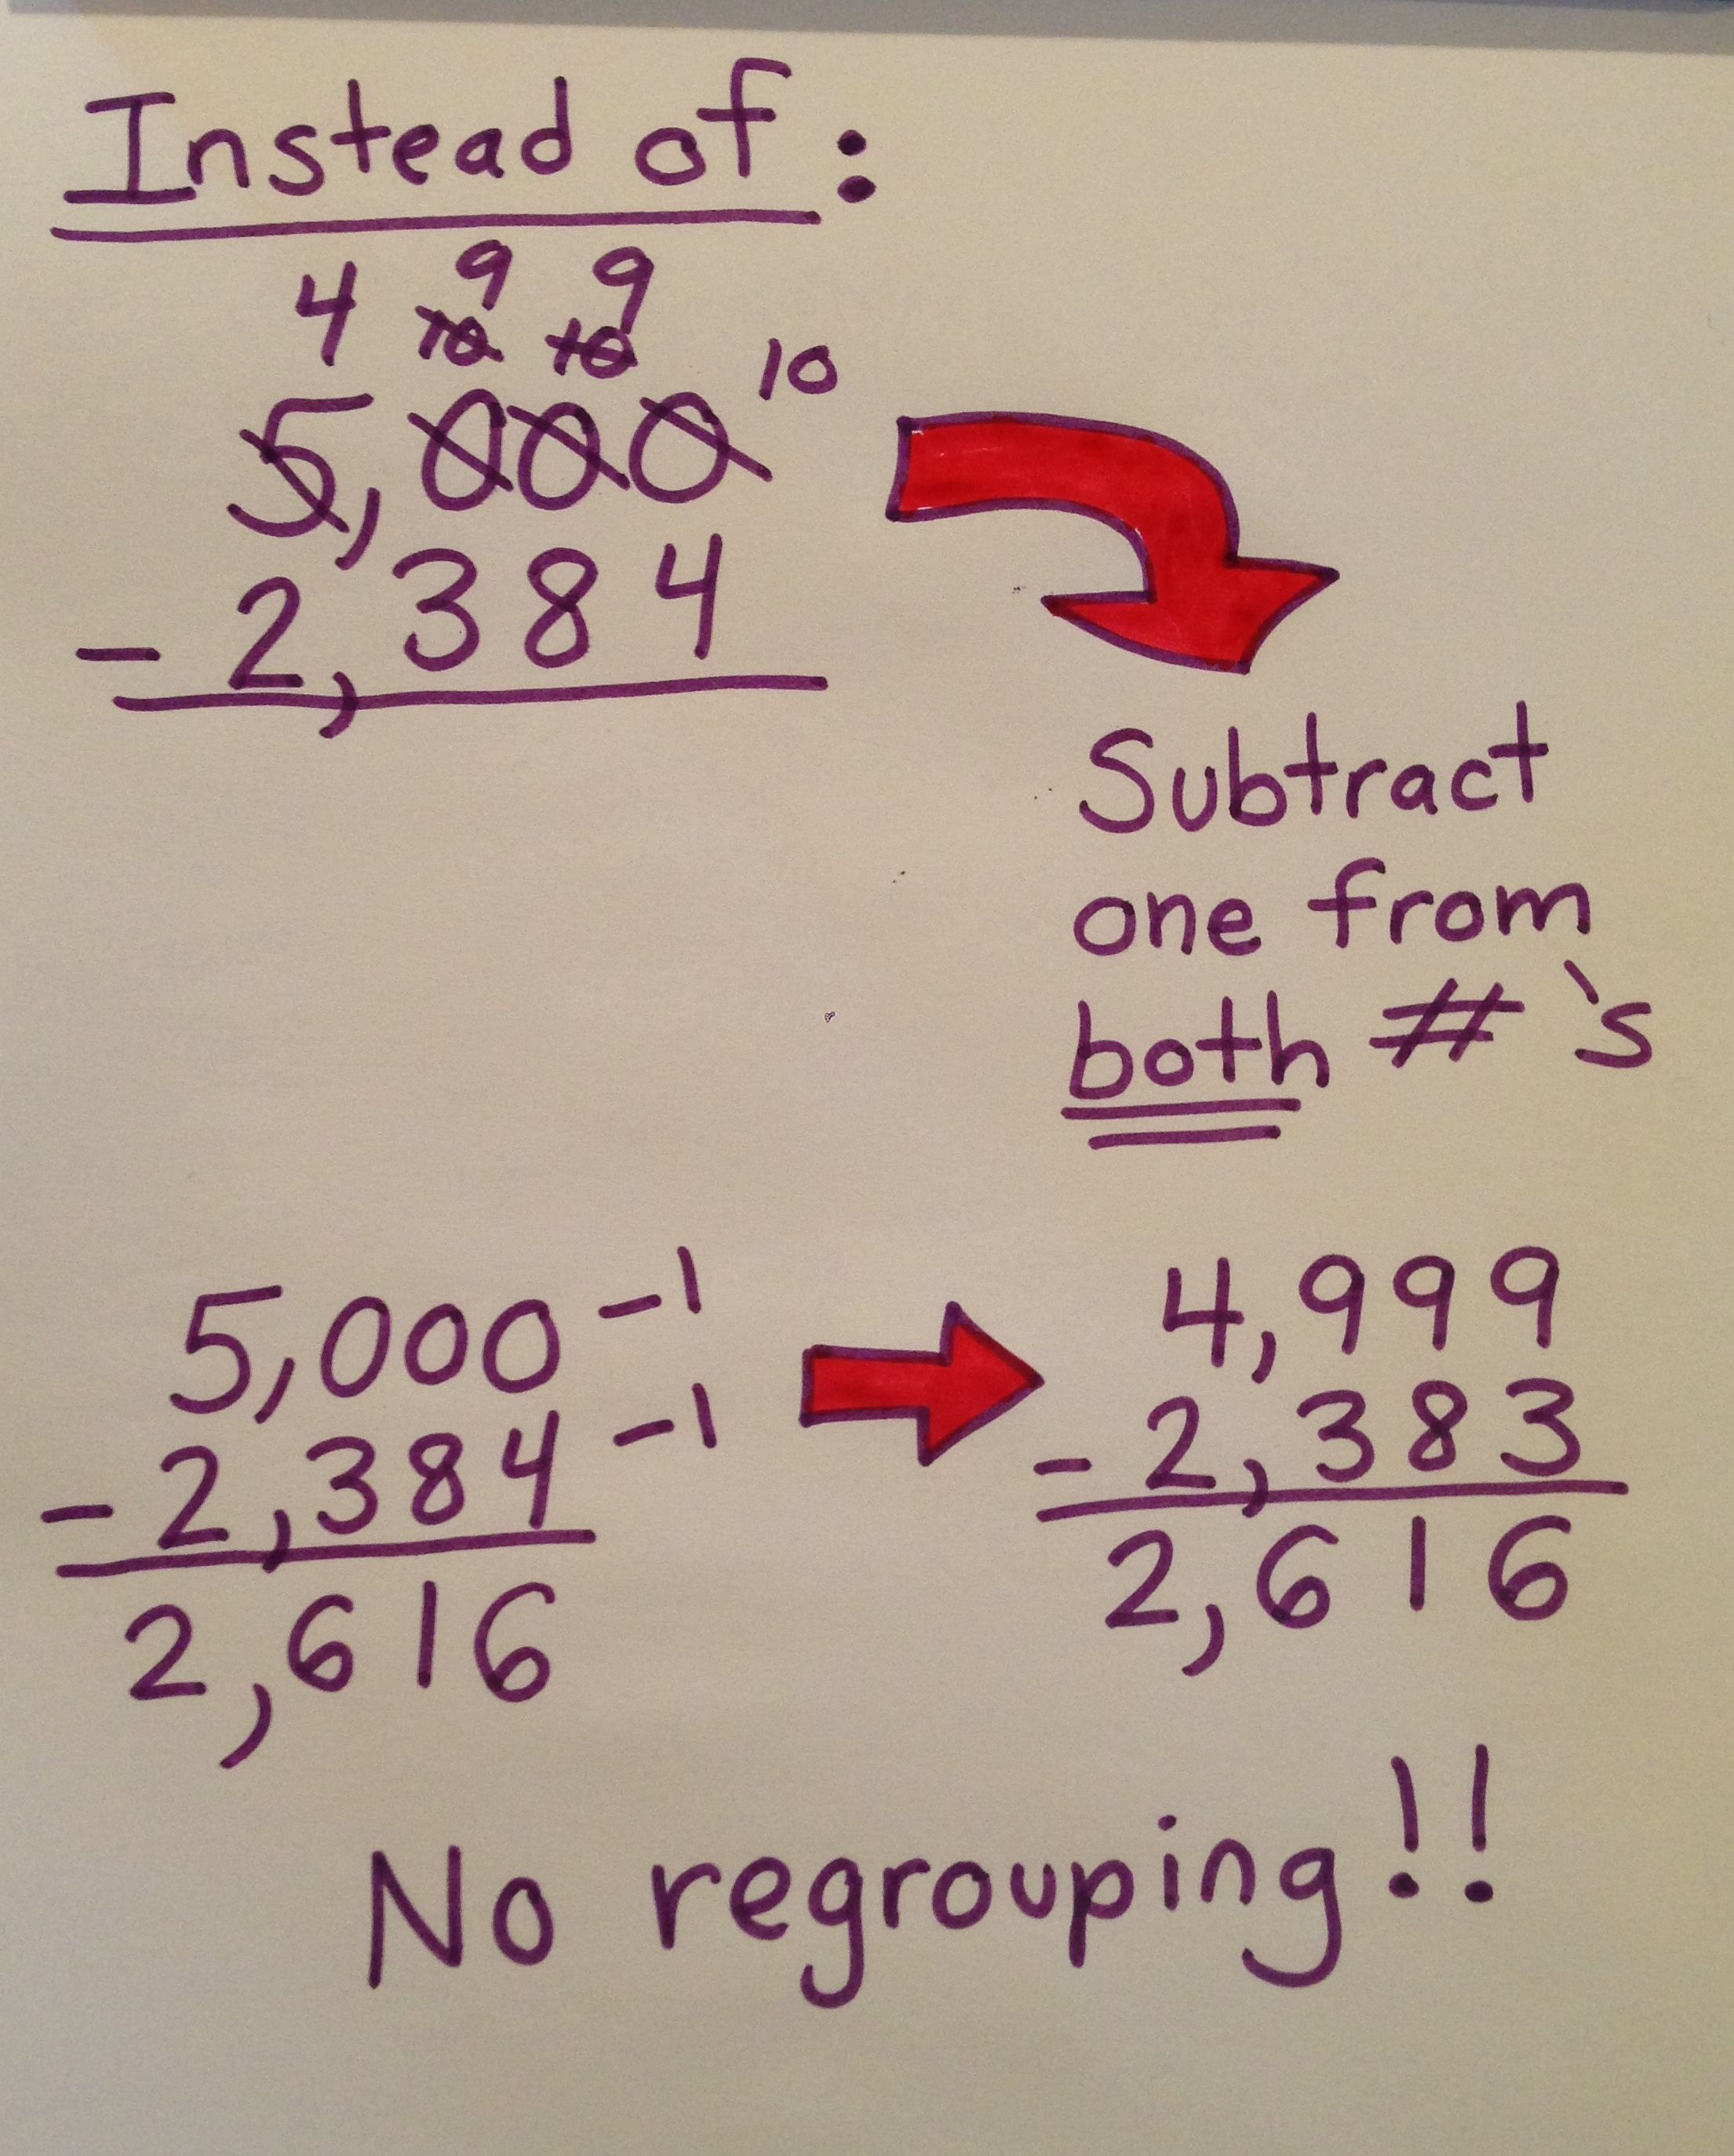 Easy Way To Subtract Across Zeros Without Regrouping